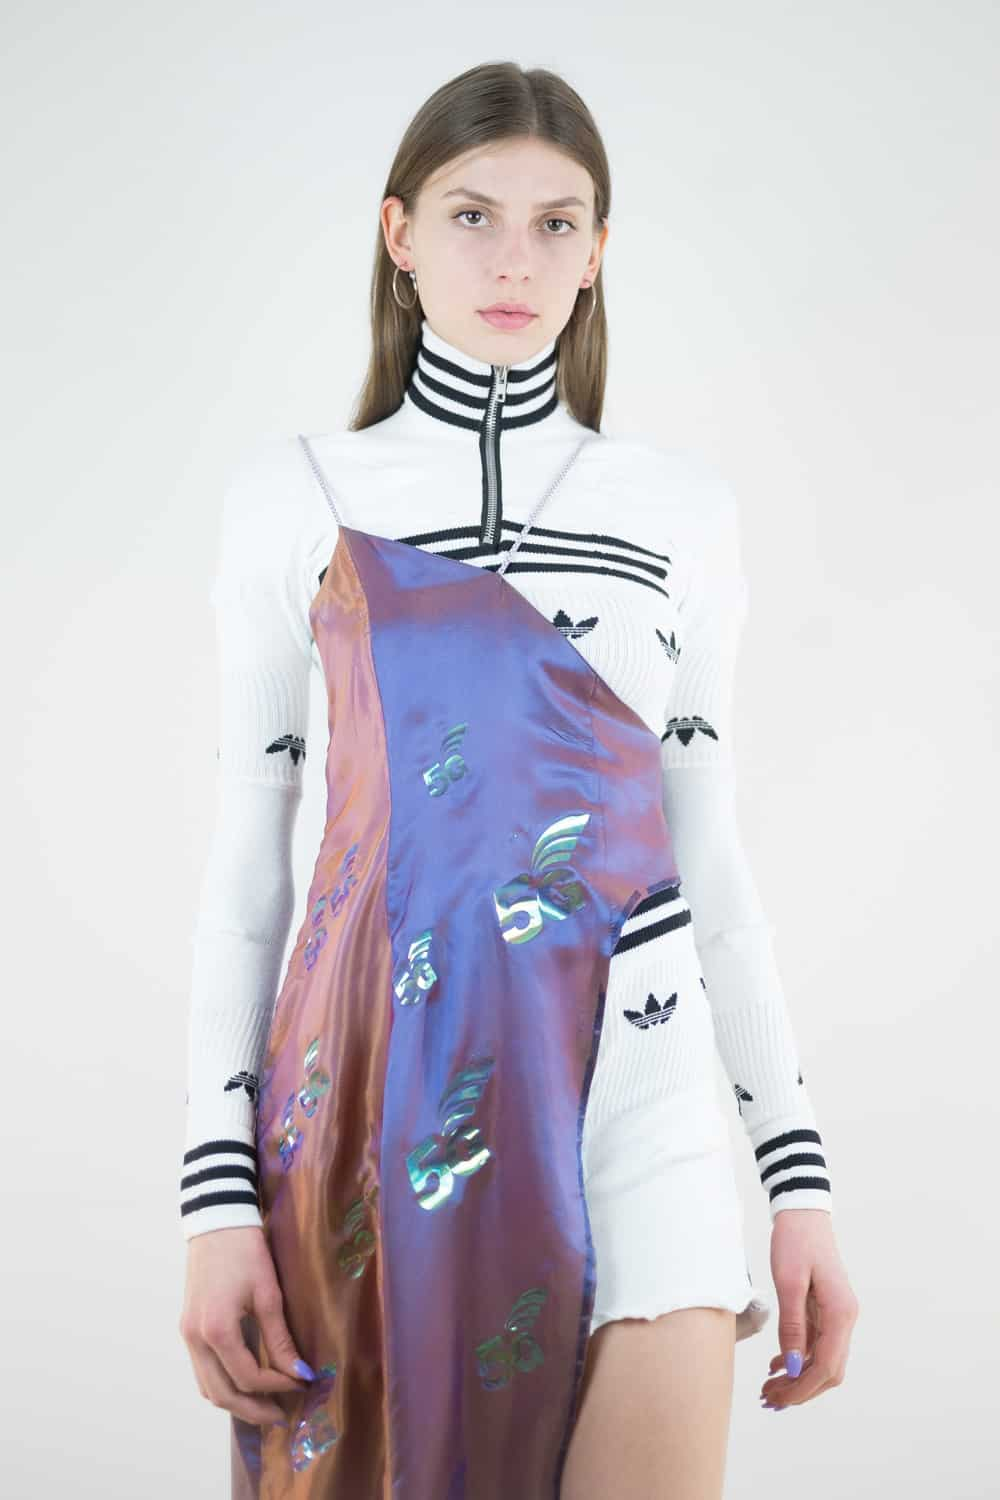 5G Upcycled Adidas Gown 5